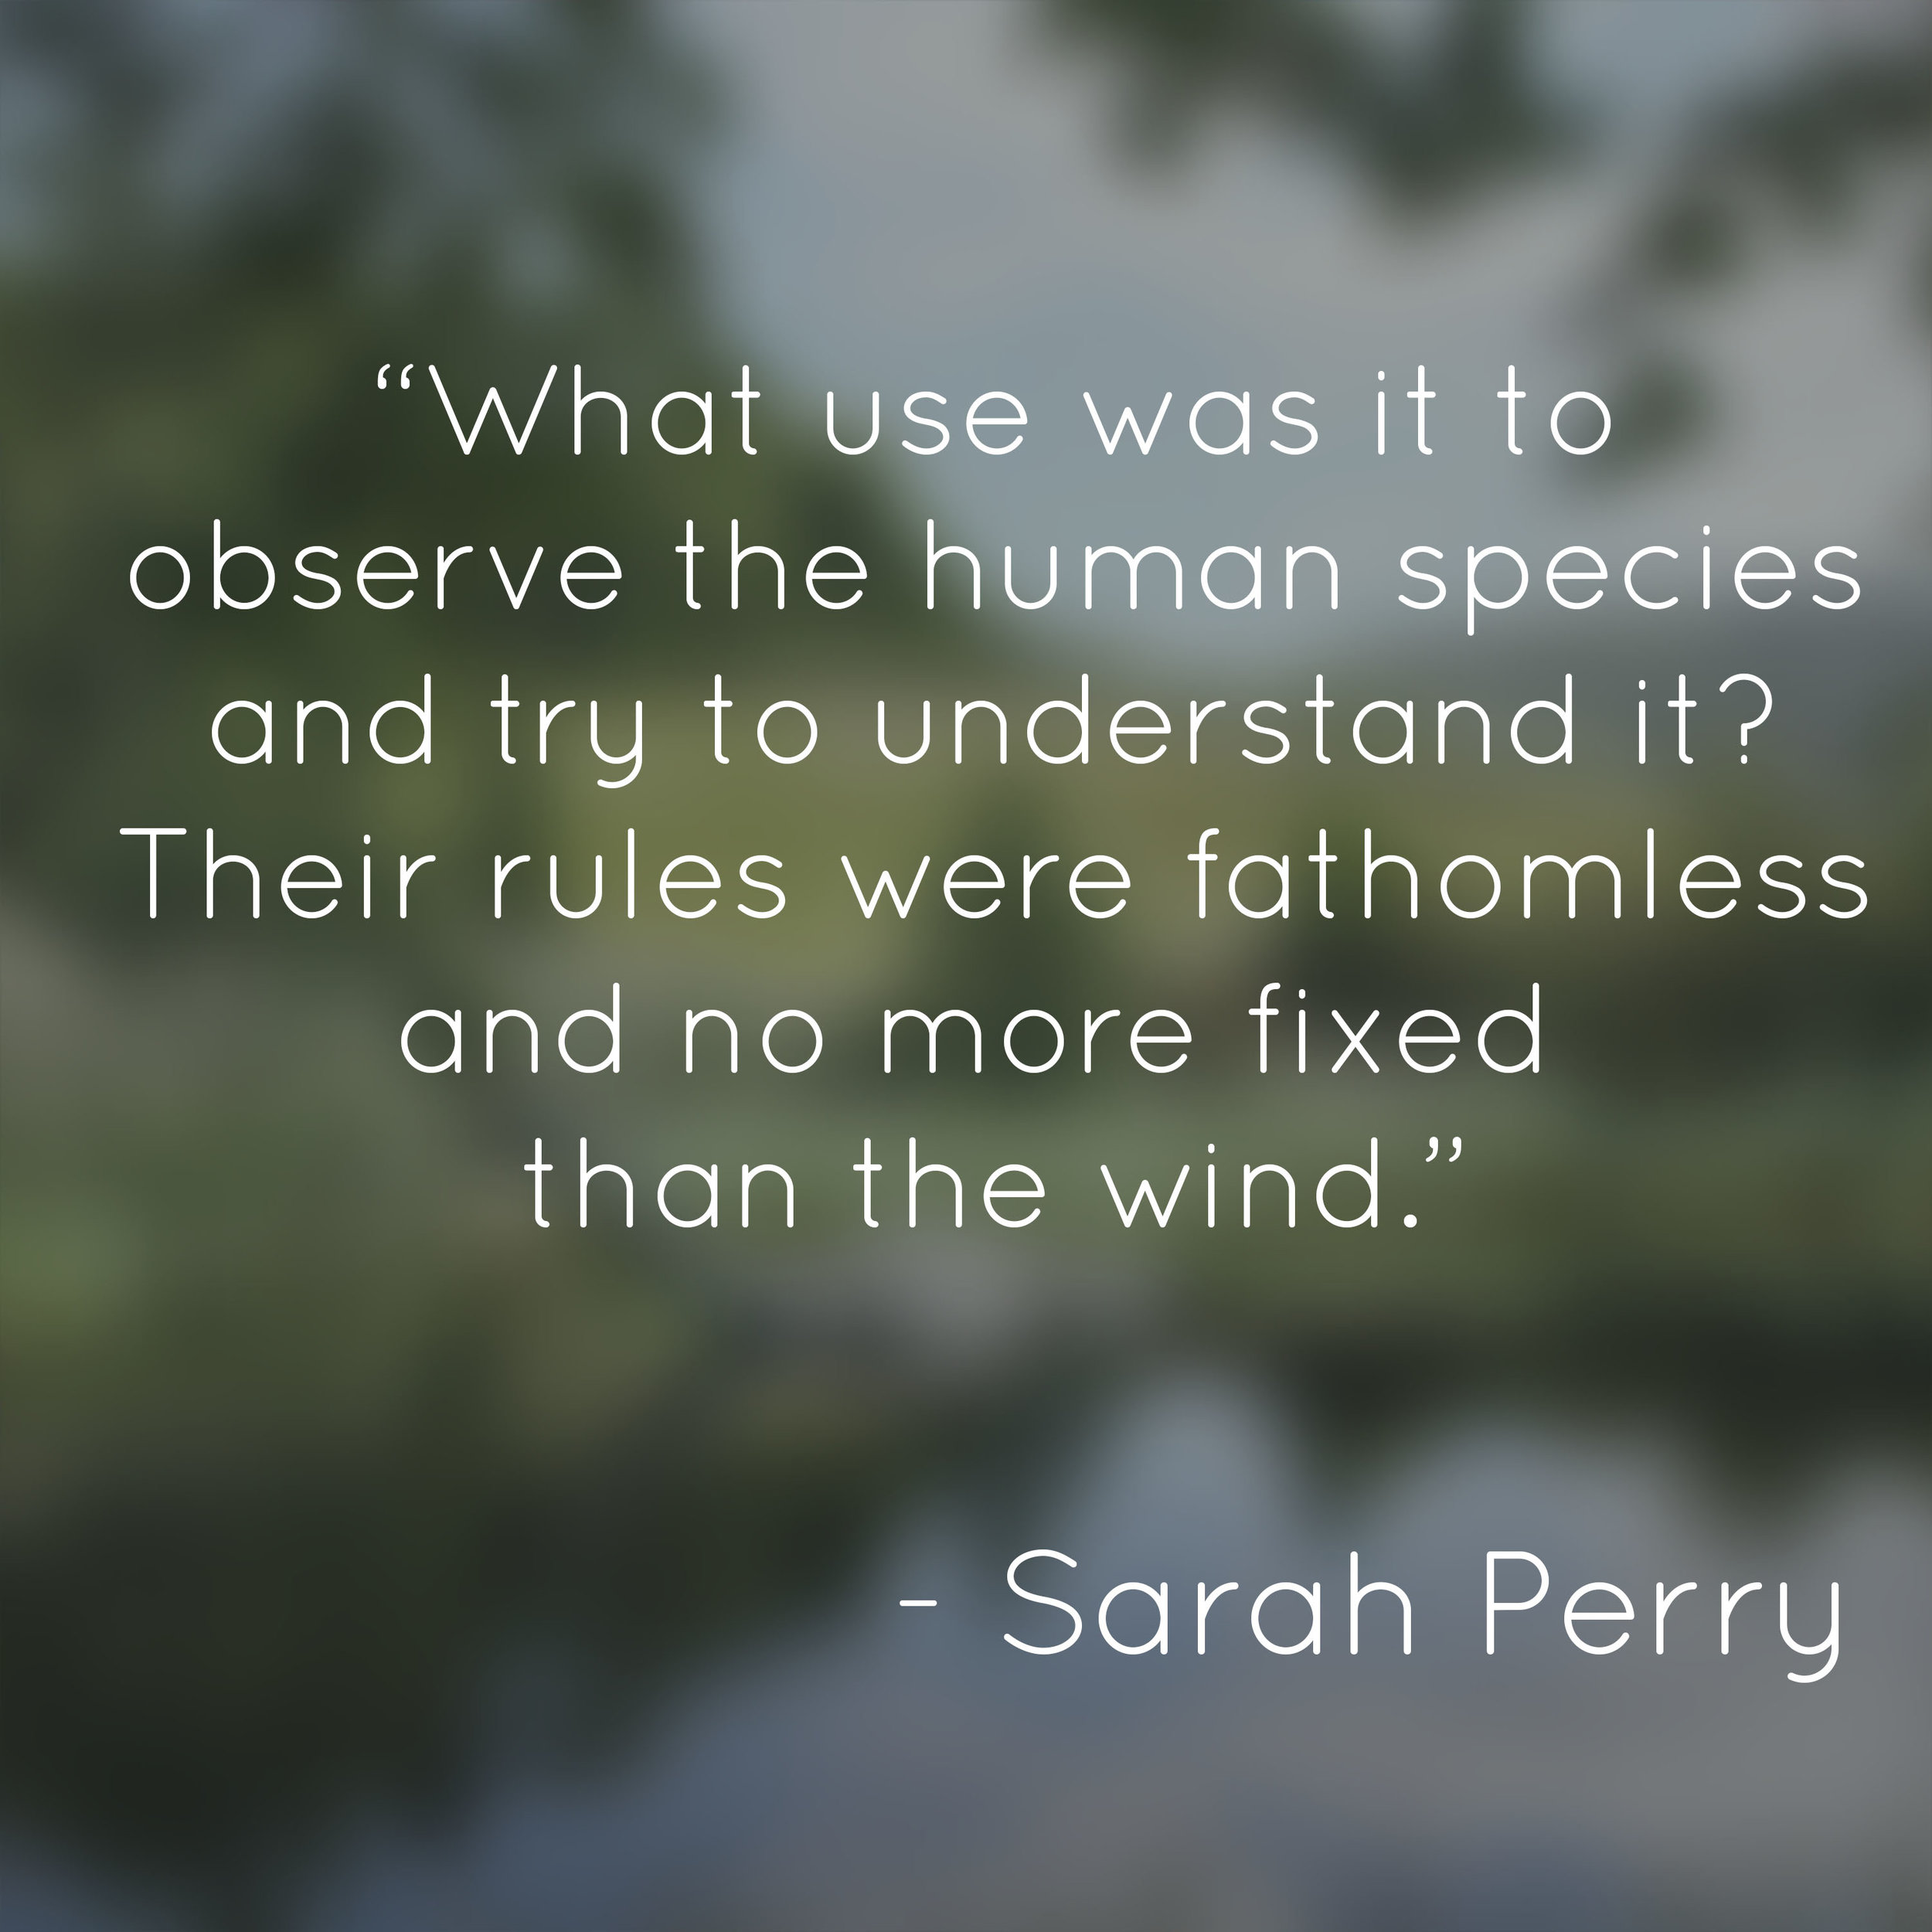 """""""What use was it to observe the human species and try to understand it? Their rules were fathomless and no more fixed than the wind."""" -Sarah Perry,  The Essex Serpent"""